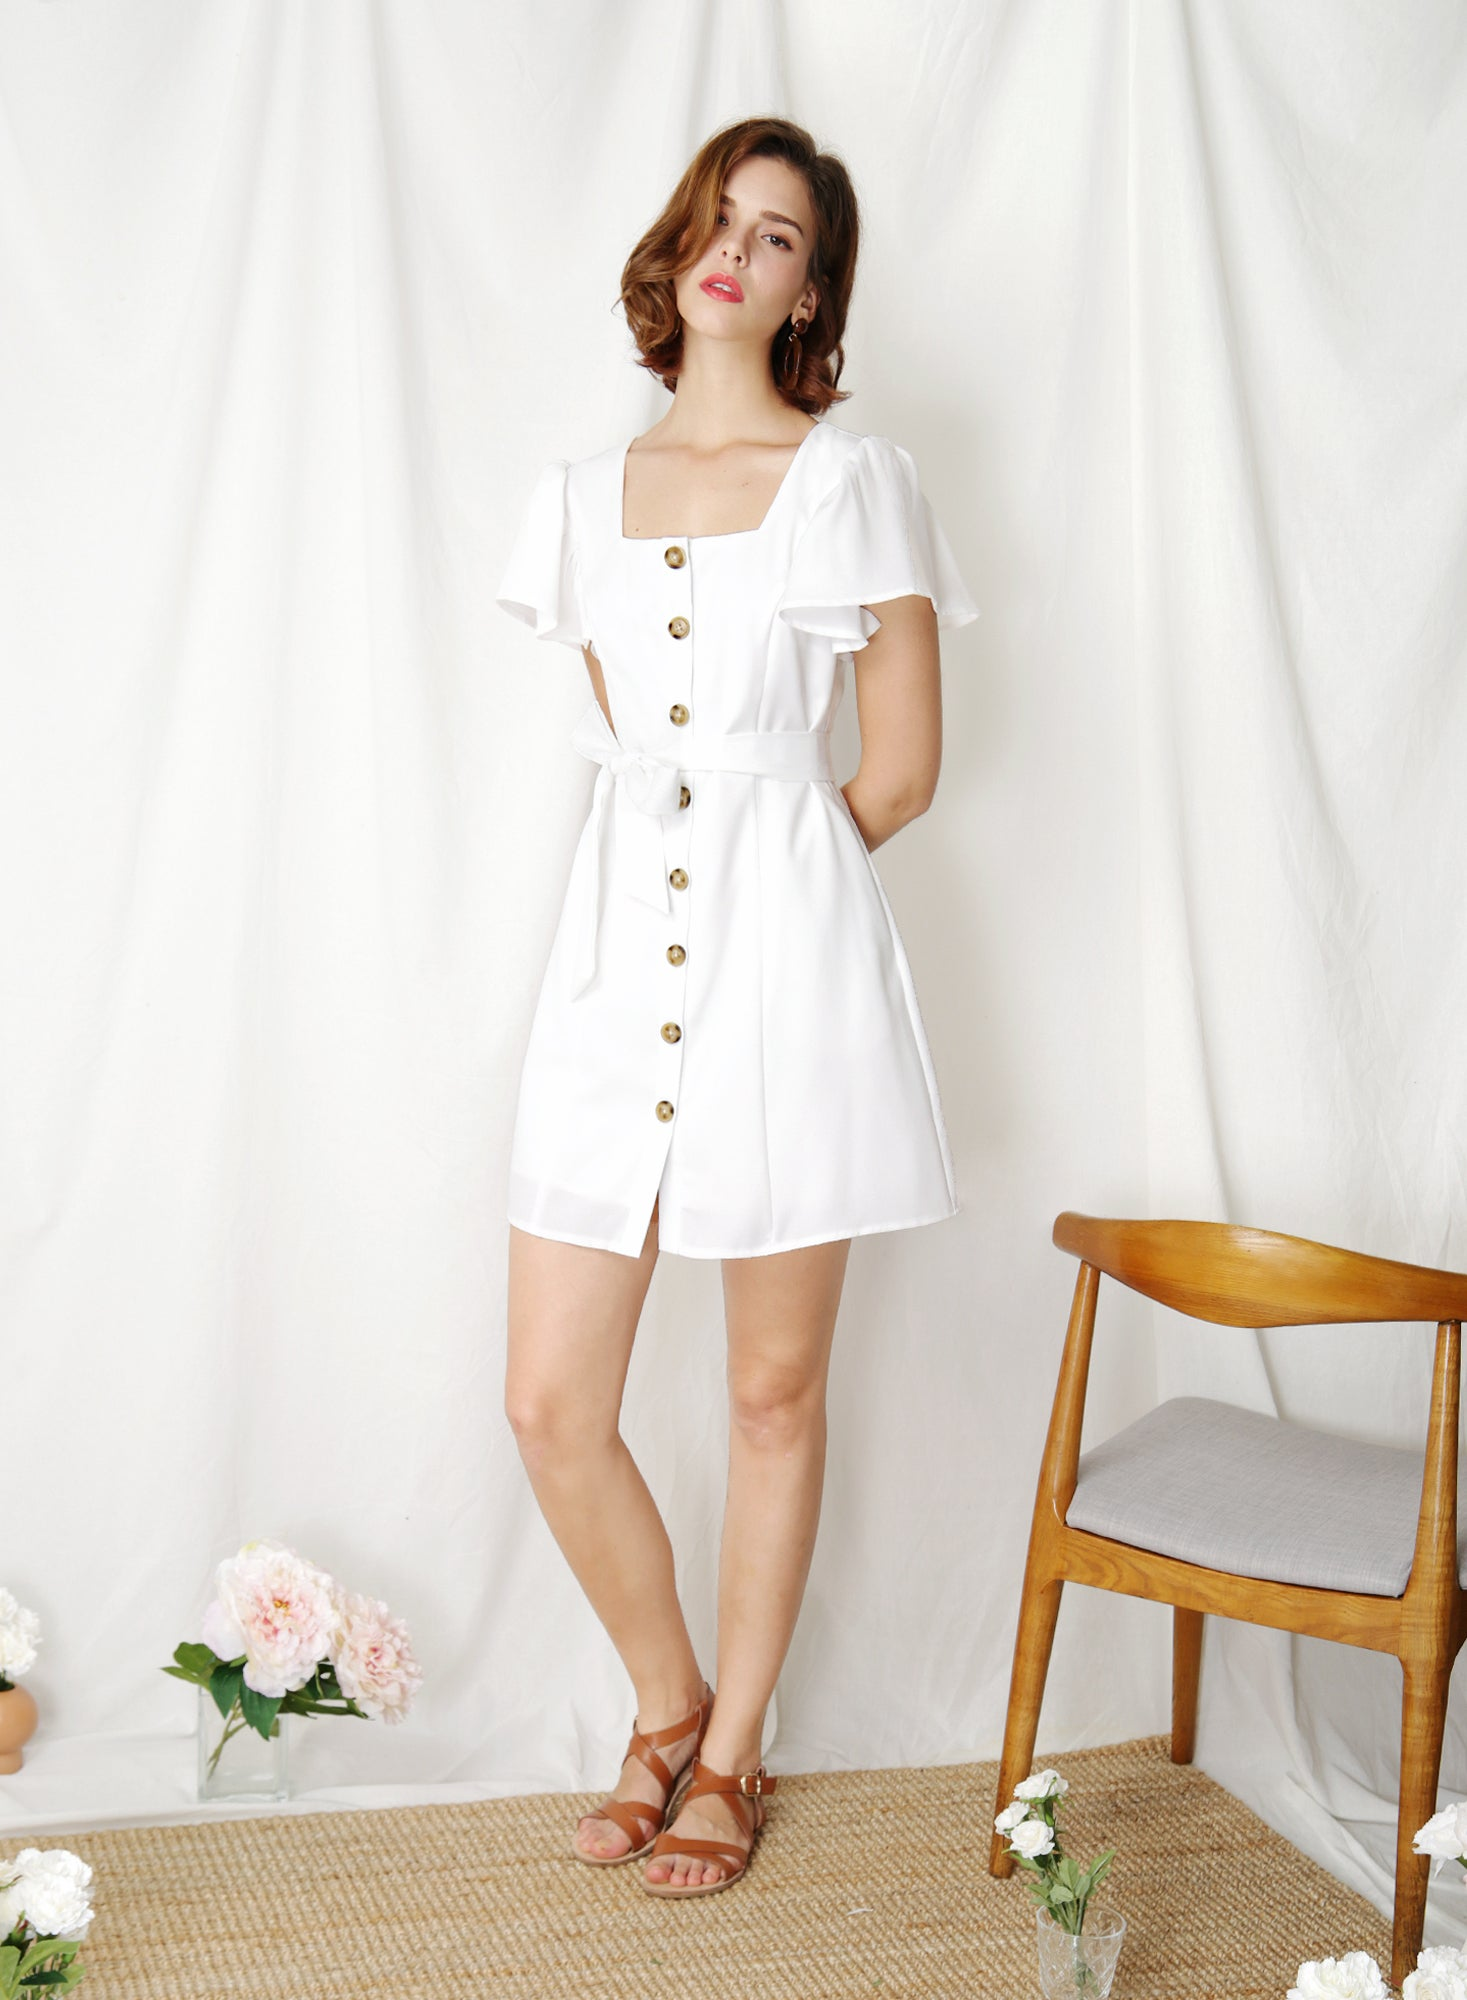 Token Square Neck Button Down Dress (White) at $ 43.50 only sold at And Well Dressed Online Fashion Store Singapore